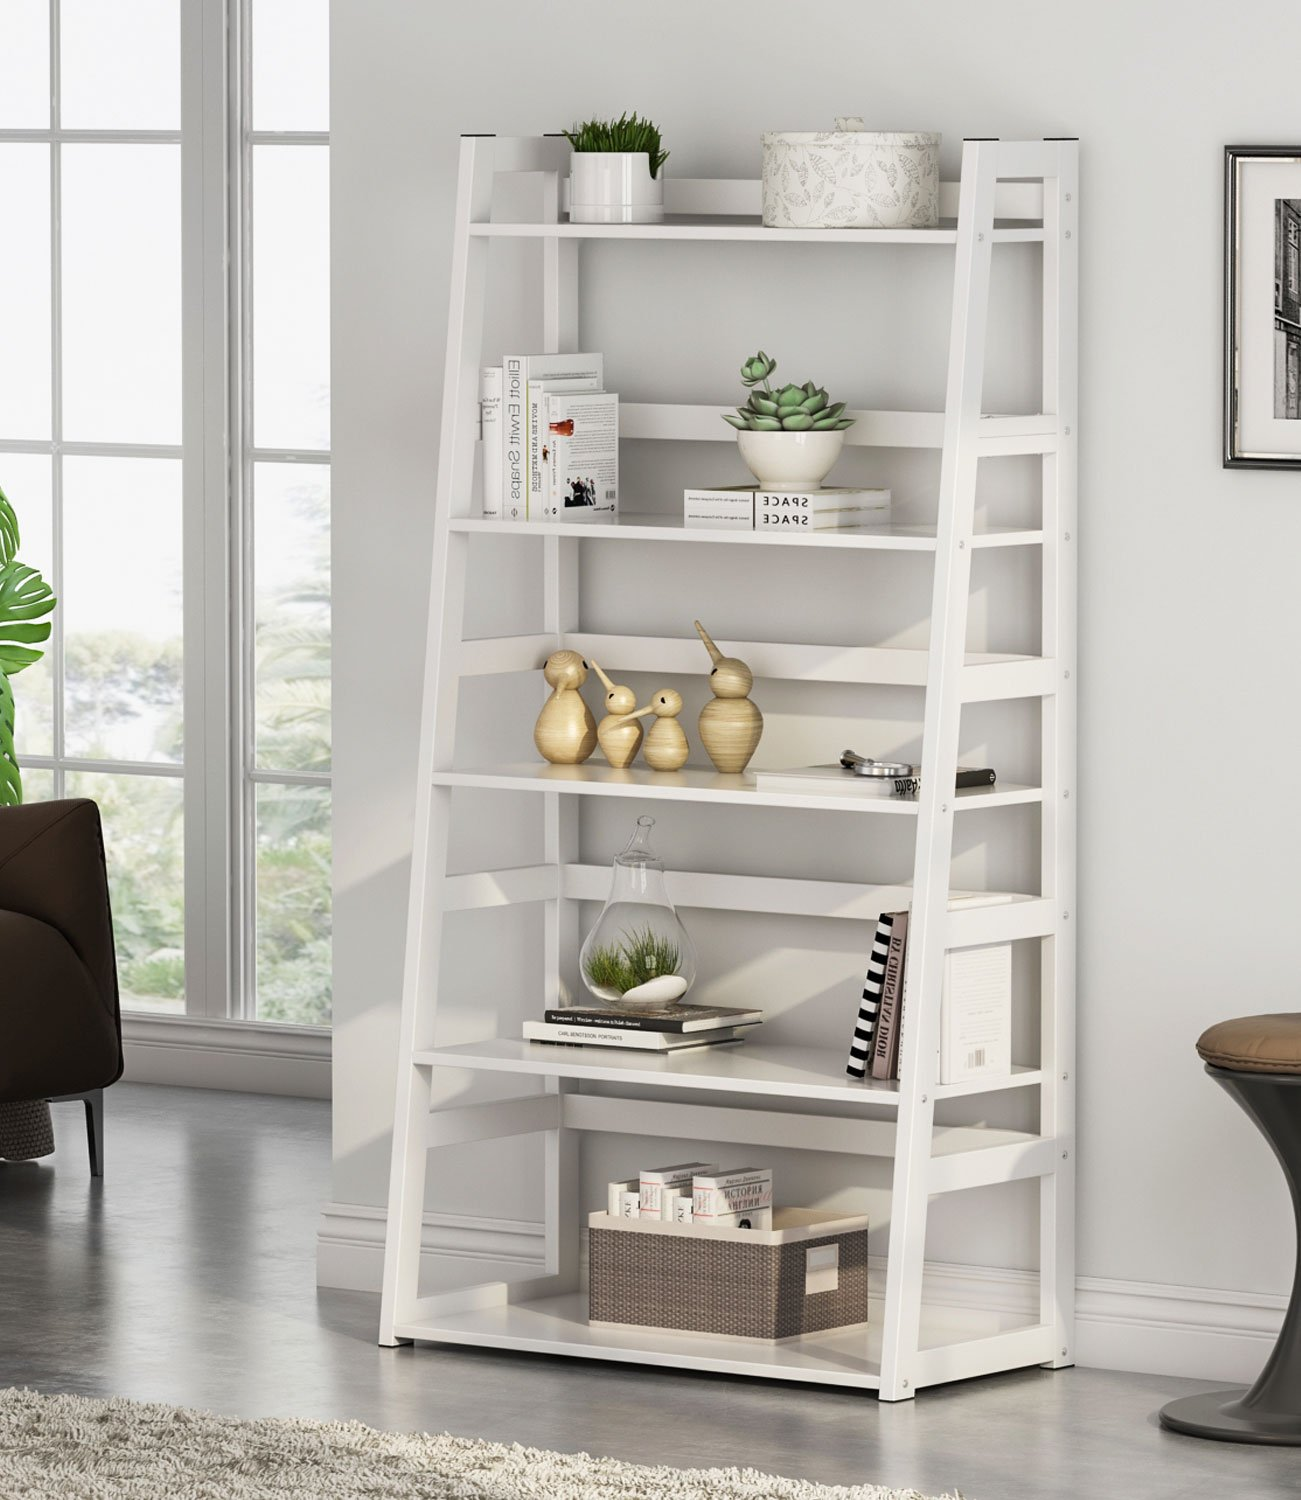 Tribesigns 5-Tier Ladder Shelf, 5 Shelf Modern Bookshelf and Bookcase Freestanding Leaning Shelf for Living Room Home Office (White) by Tribesigns